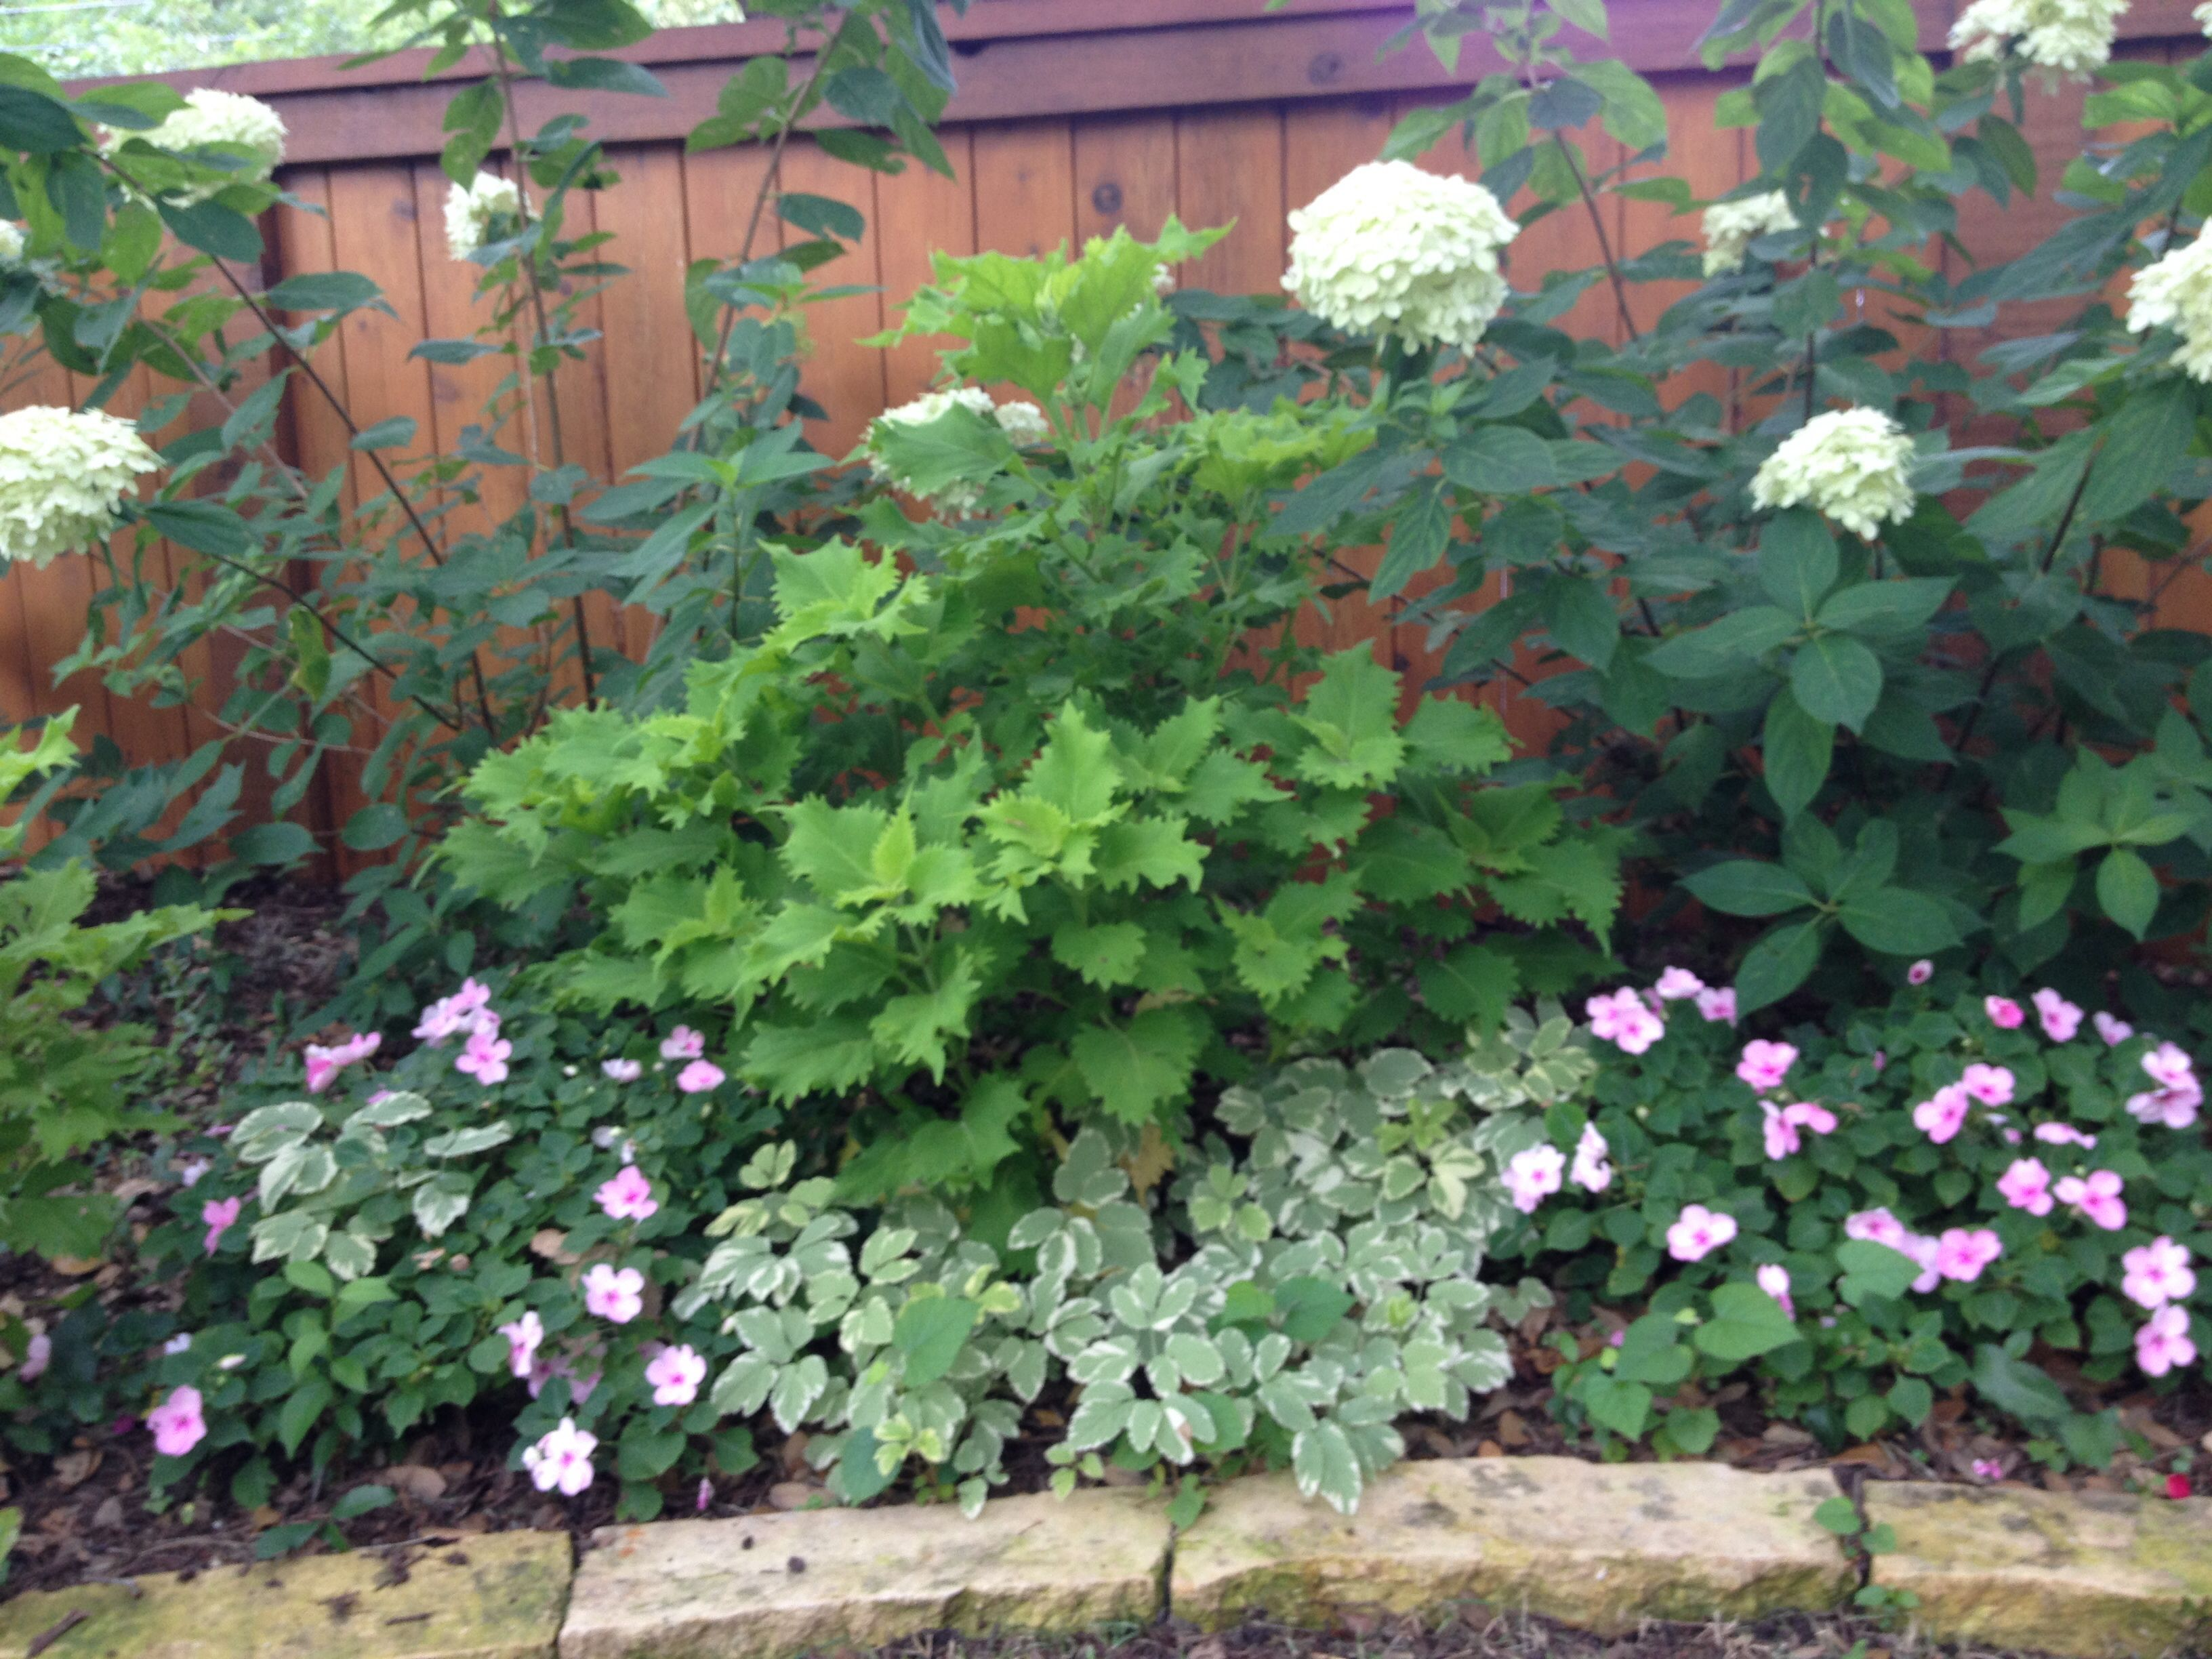 Find This Pin And More On Shade Garden Plants U0026 Ideas By Cityfloral.